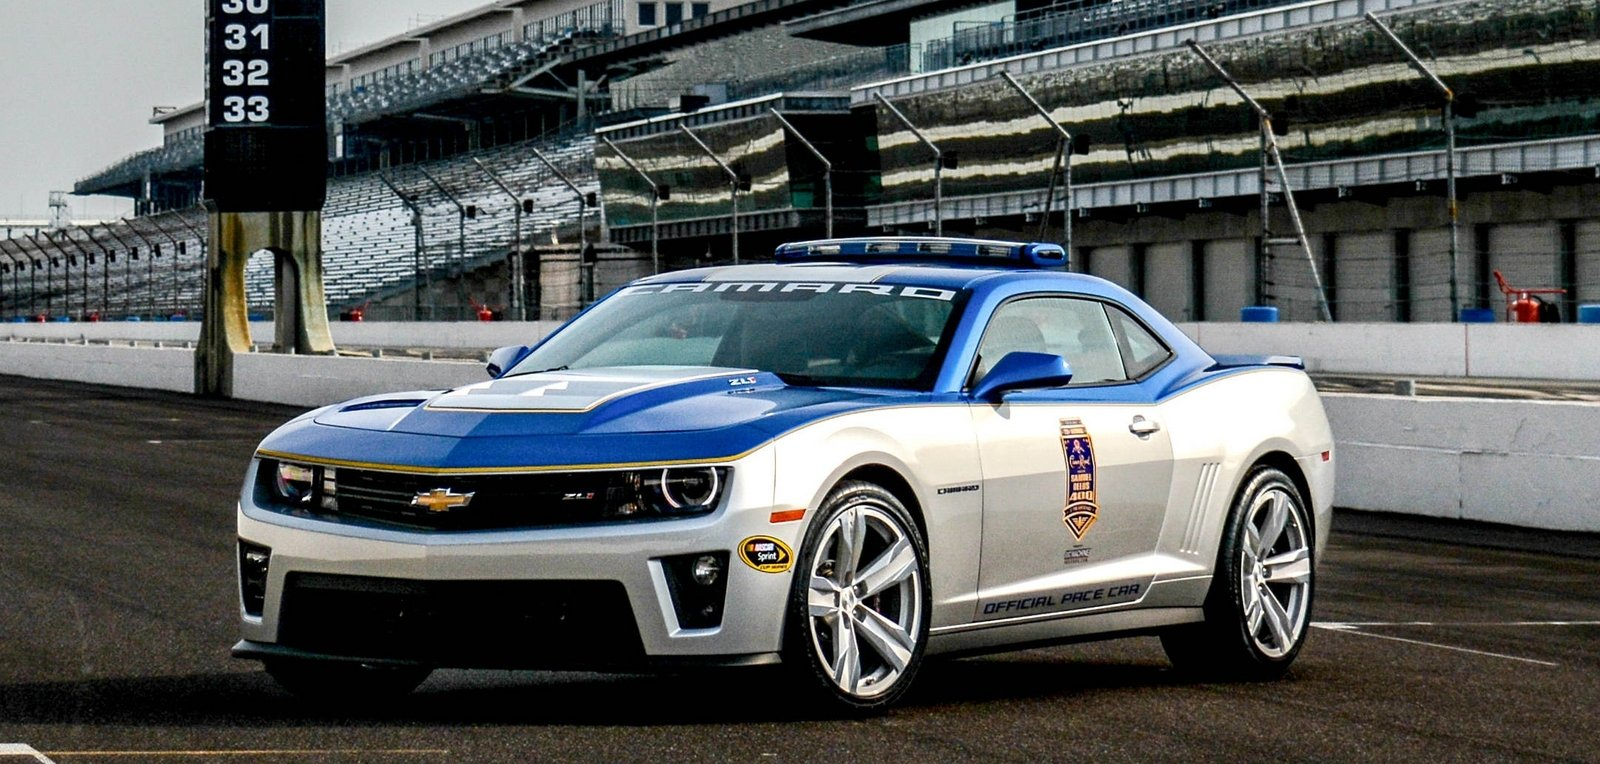 2013 Chevrolet Camaro Zl1 Pace Car Picture 516309 Car